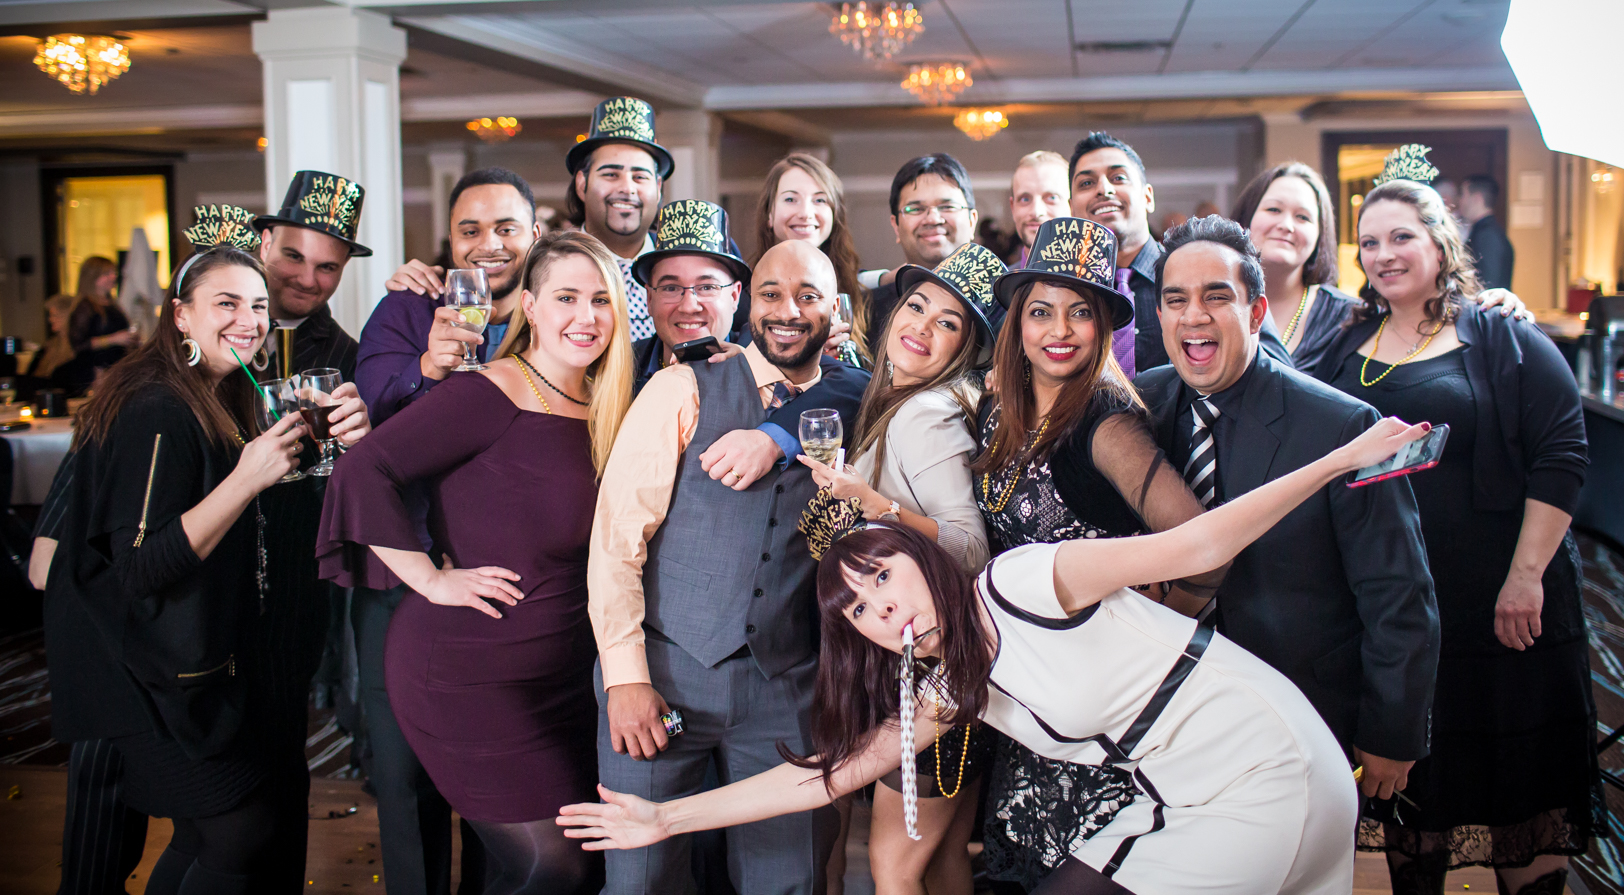 indoor wedding party portrait - New Years Eve Wedding Edmonton